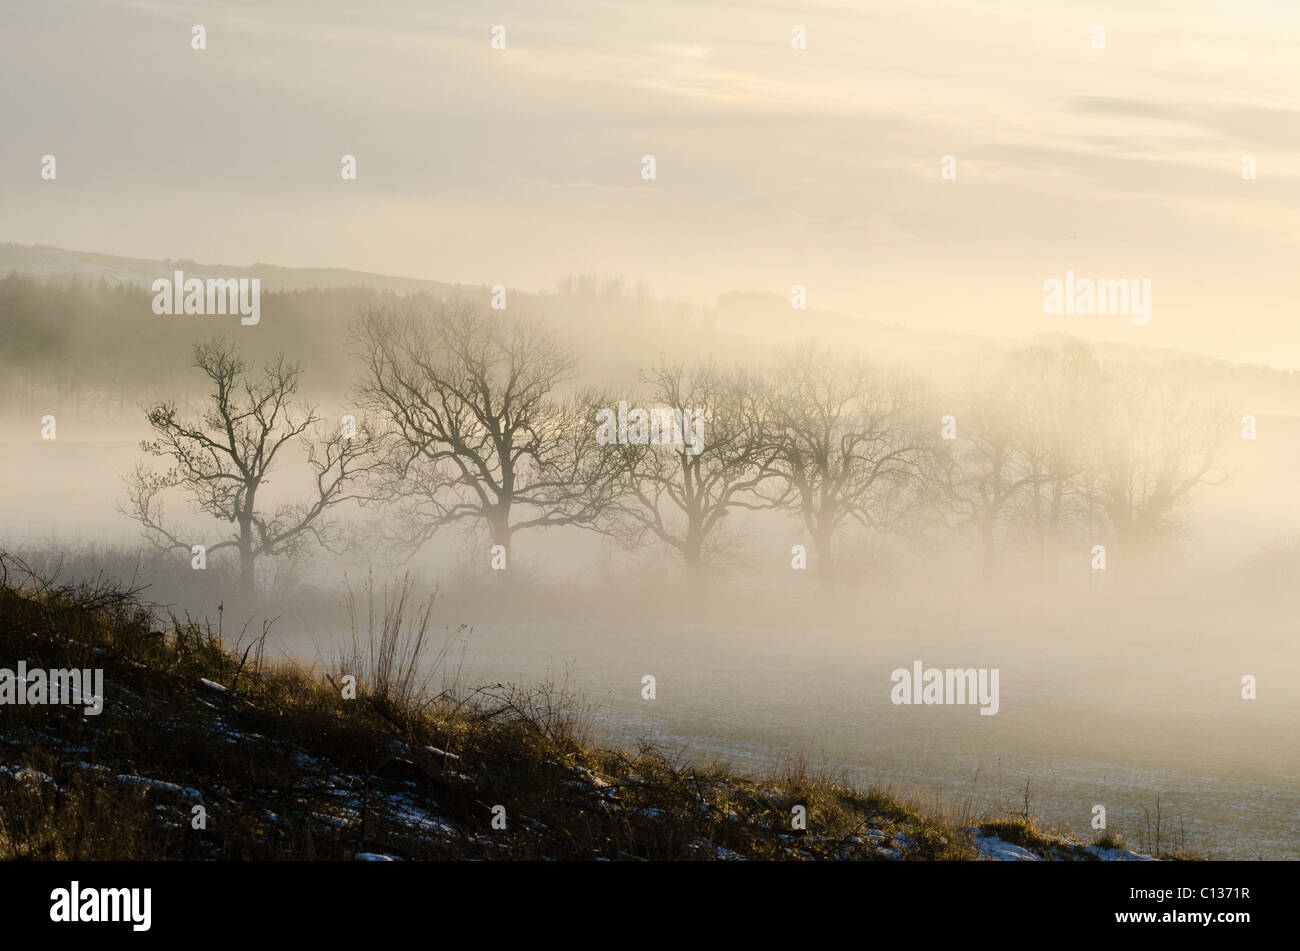 Sunset shining through trees with mist and deep frost - Stock Image